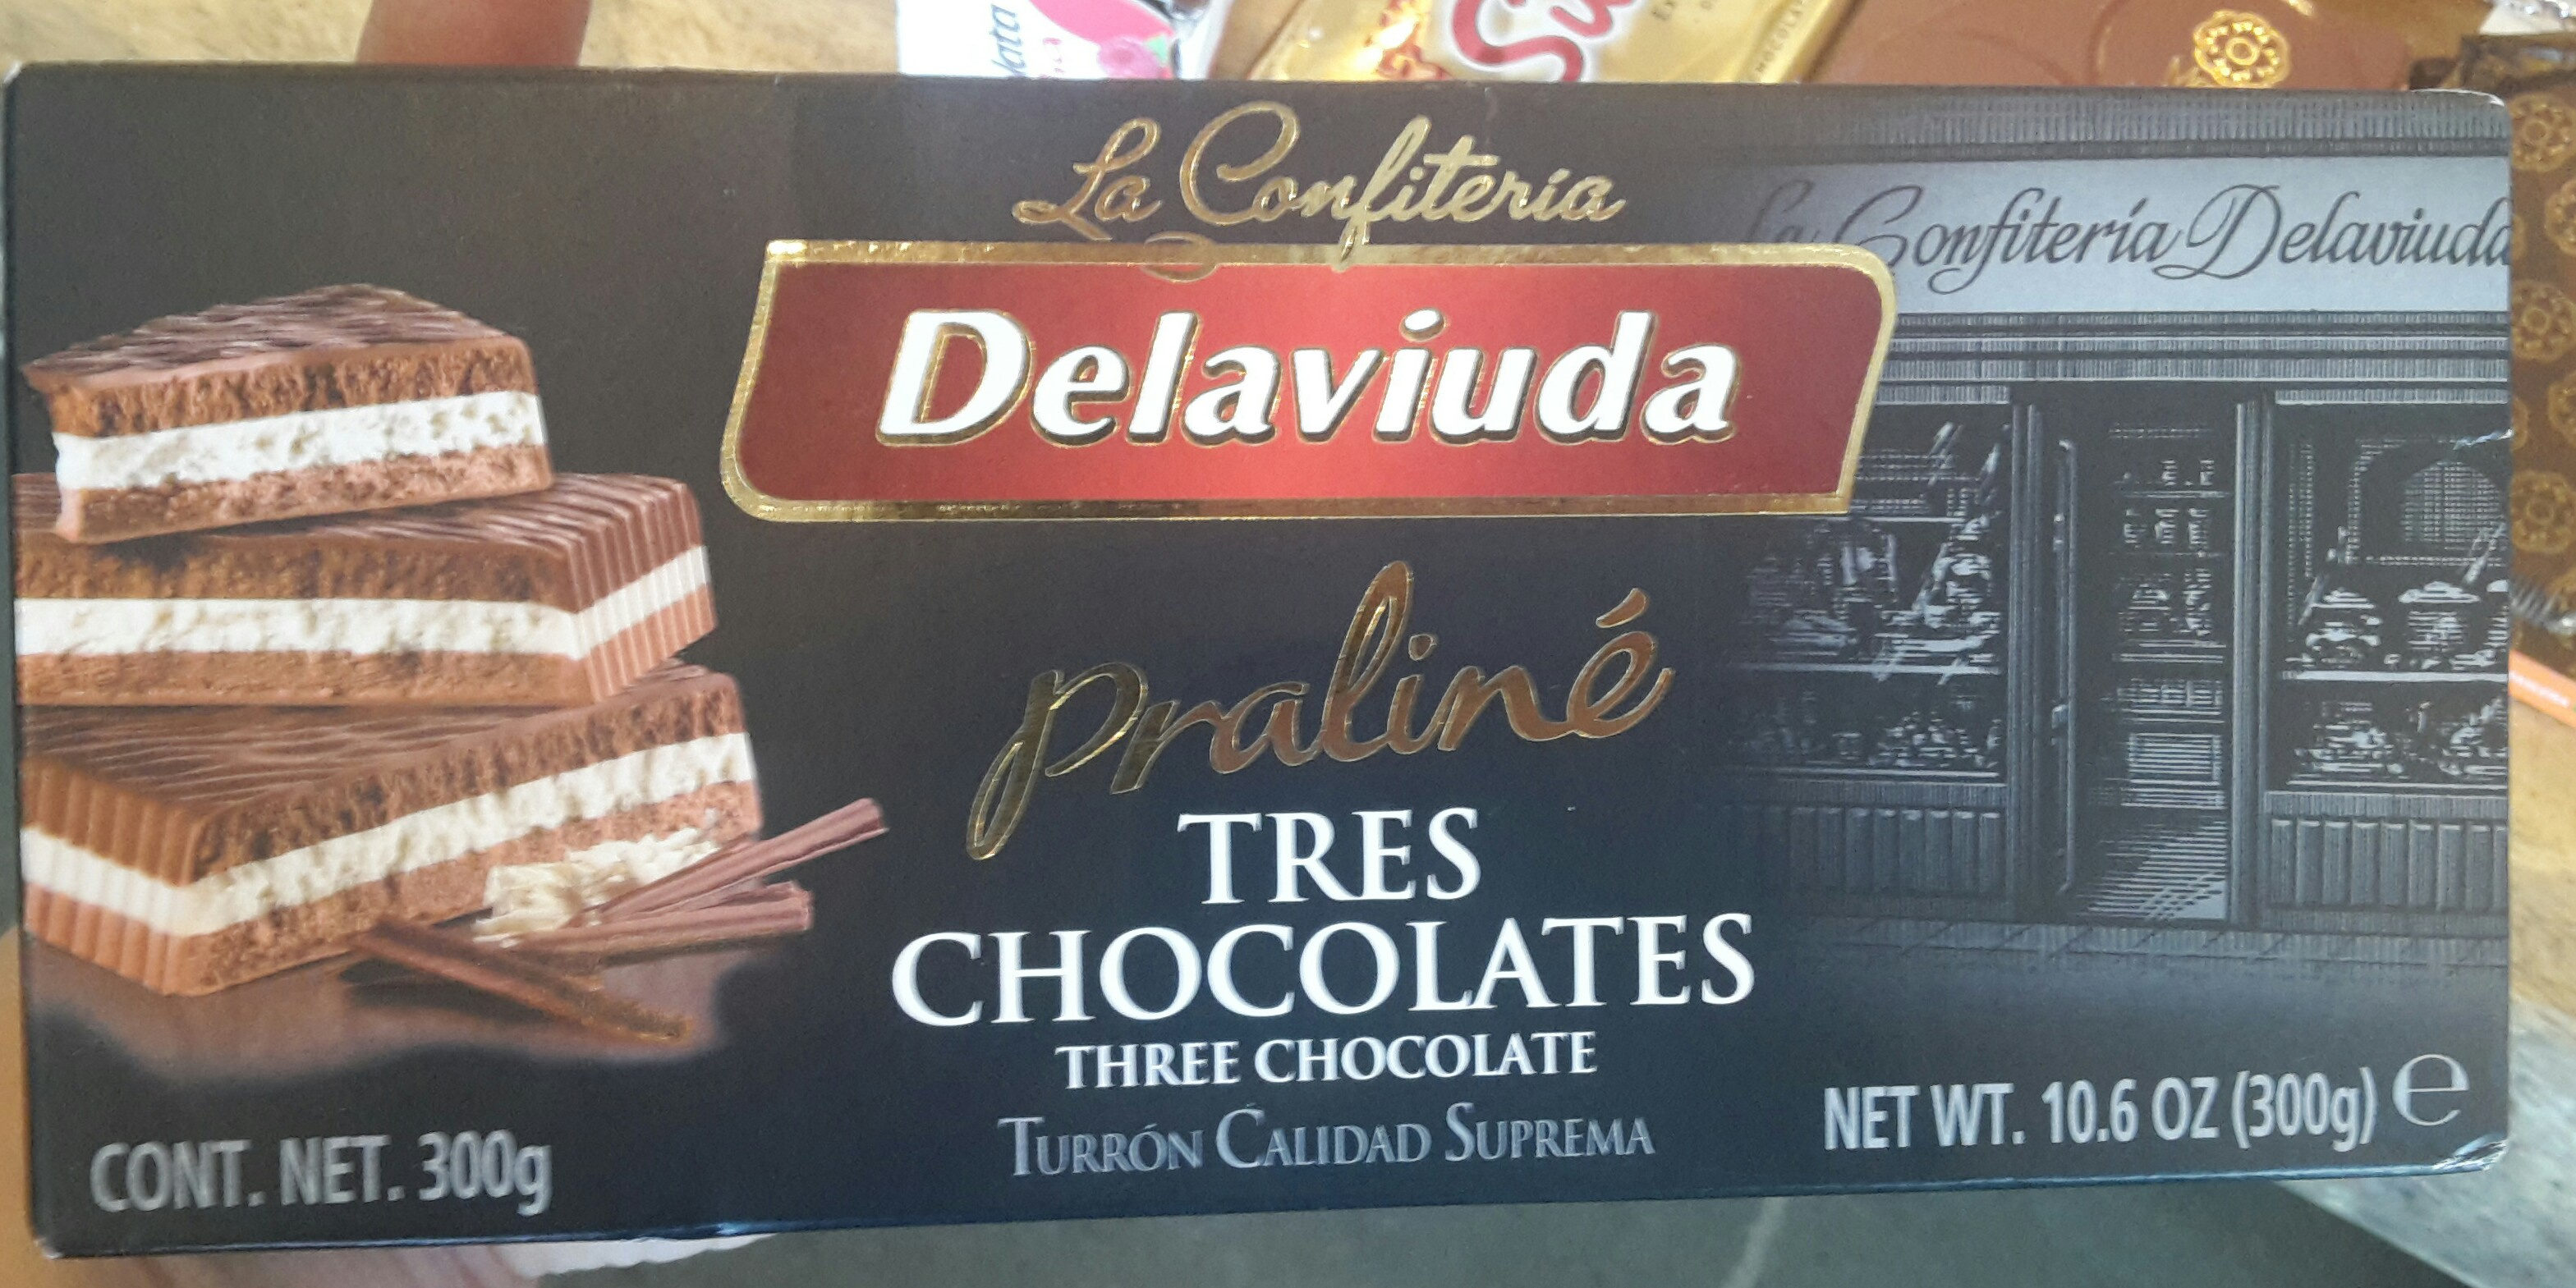 Praliné très chocolates - Product - en